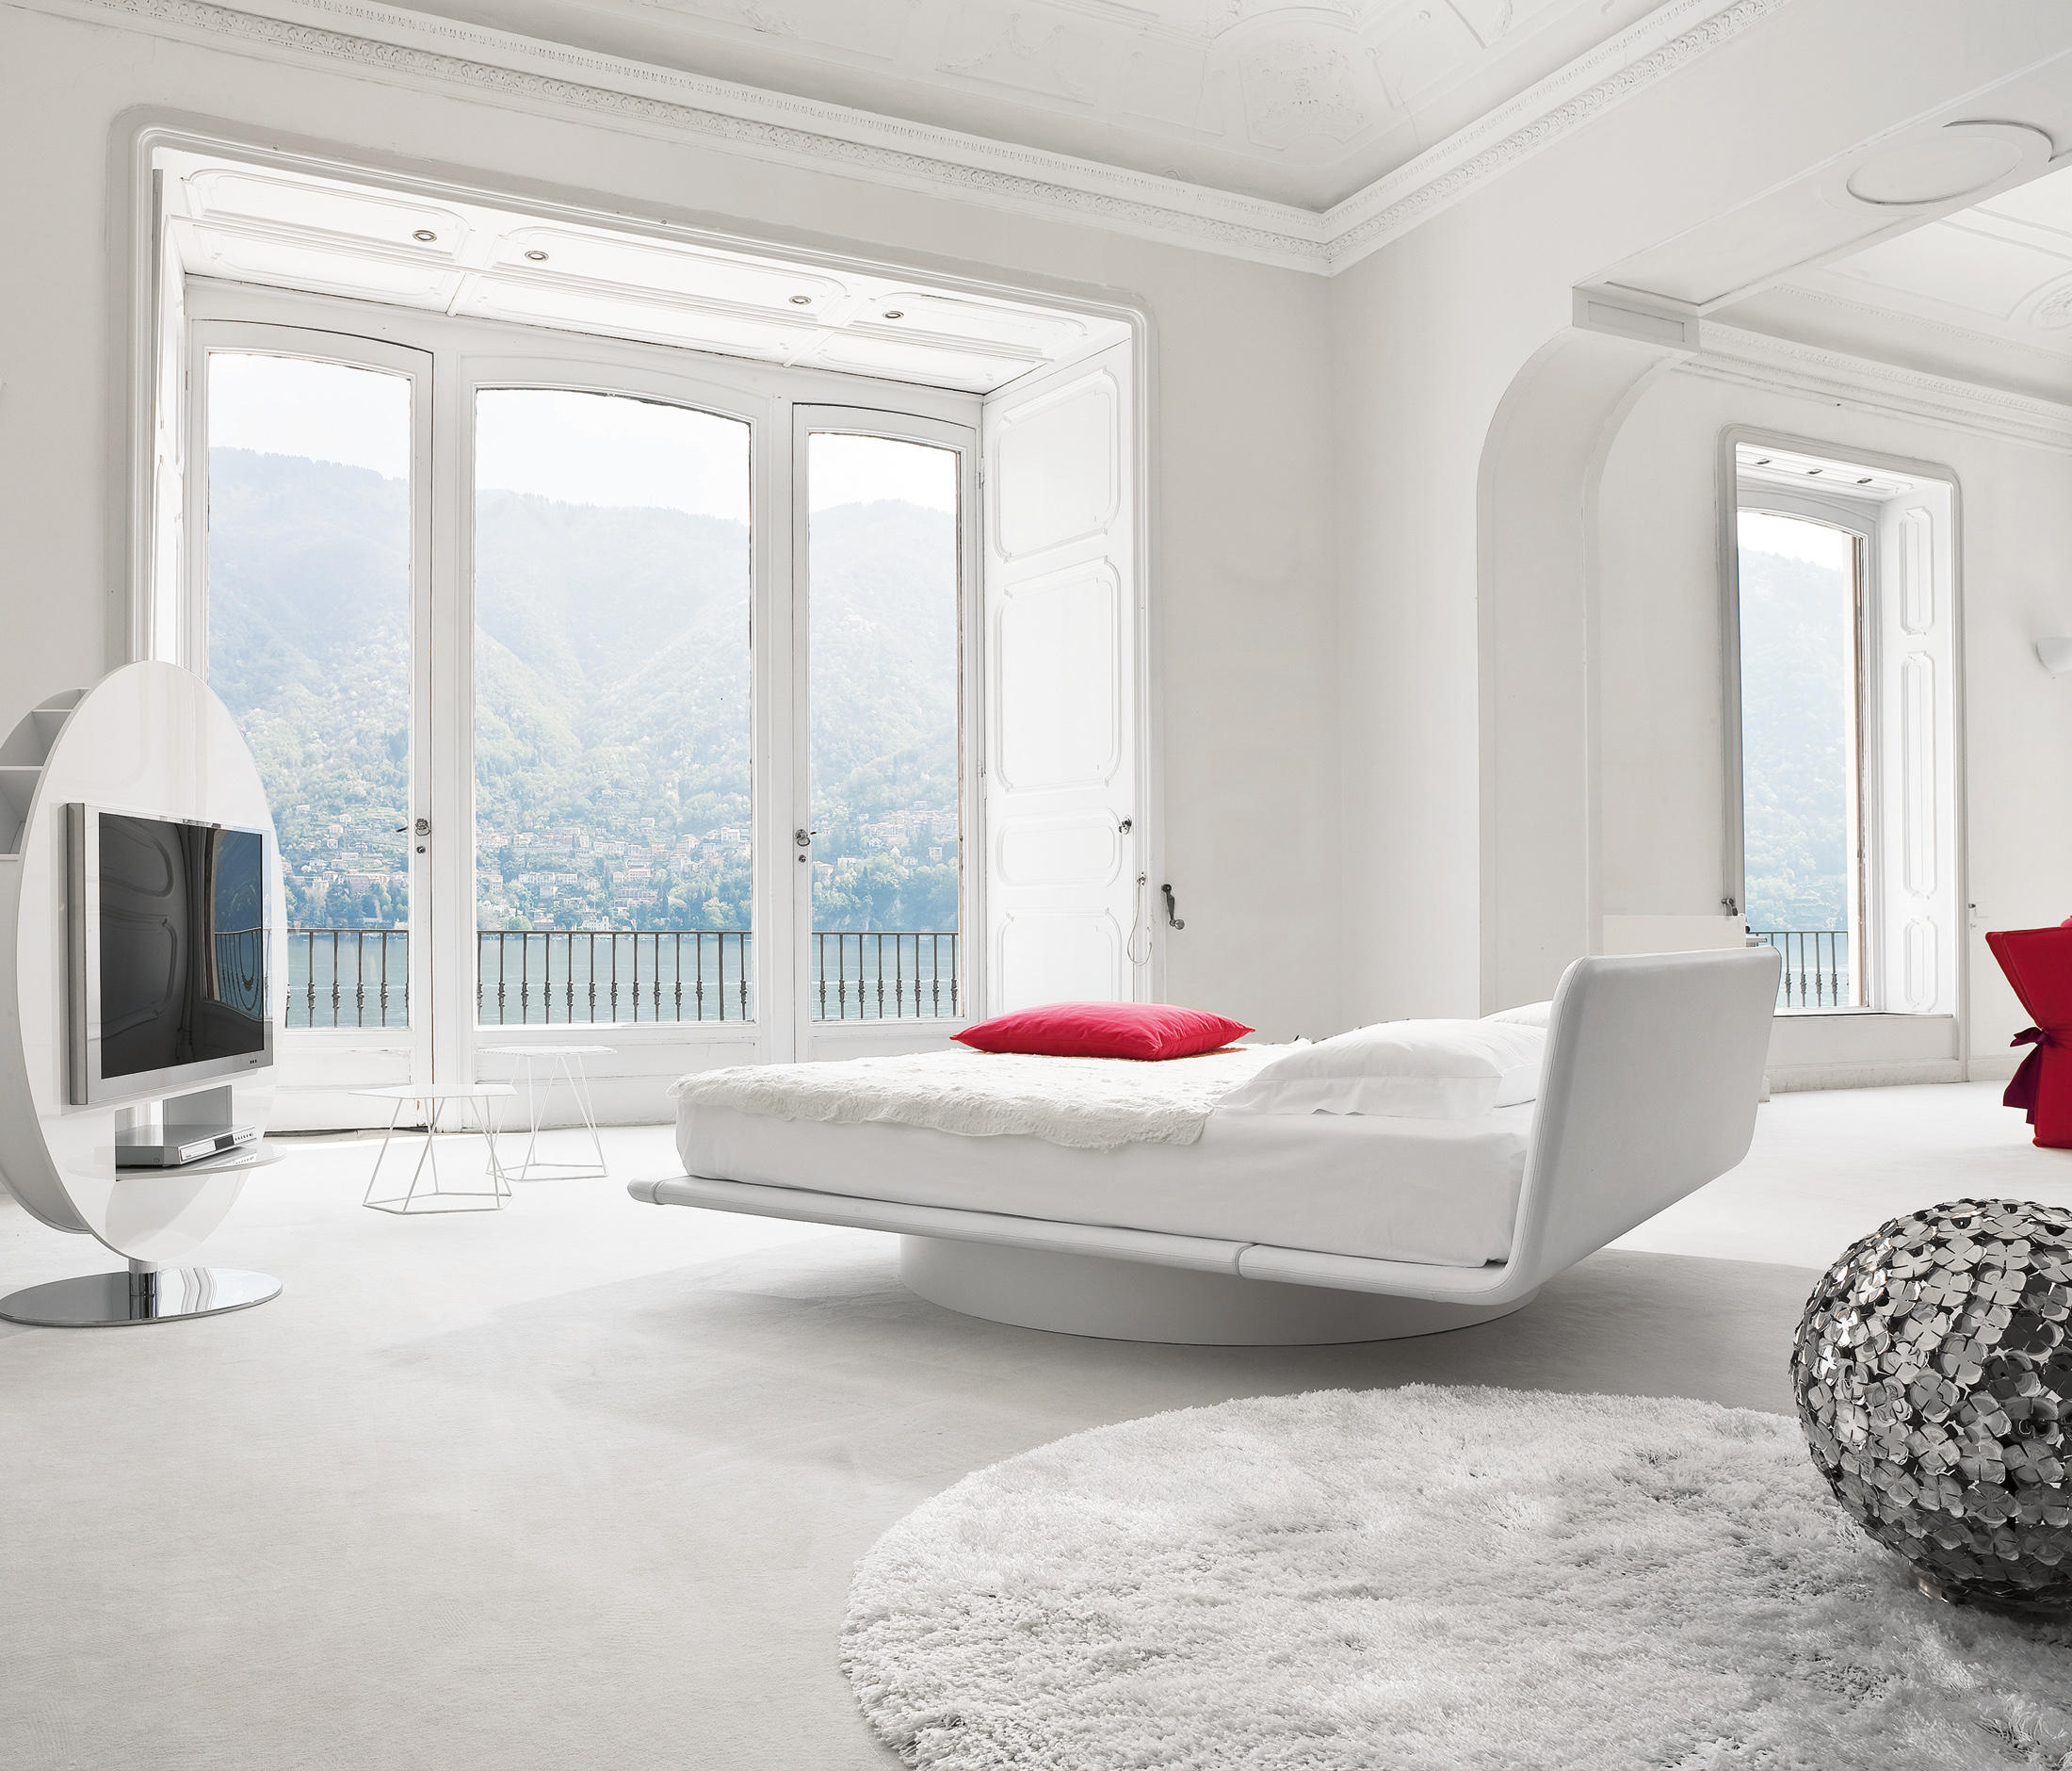 GIOTTO - Double beds from Bonaldo | Architonic